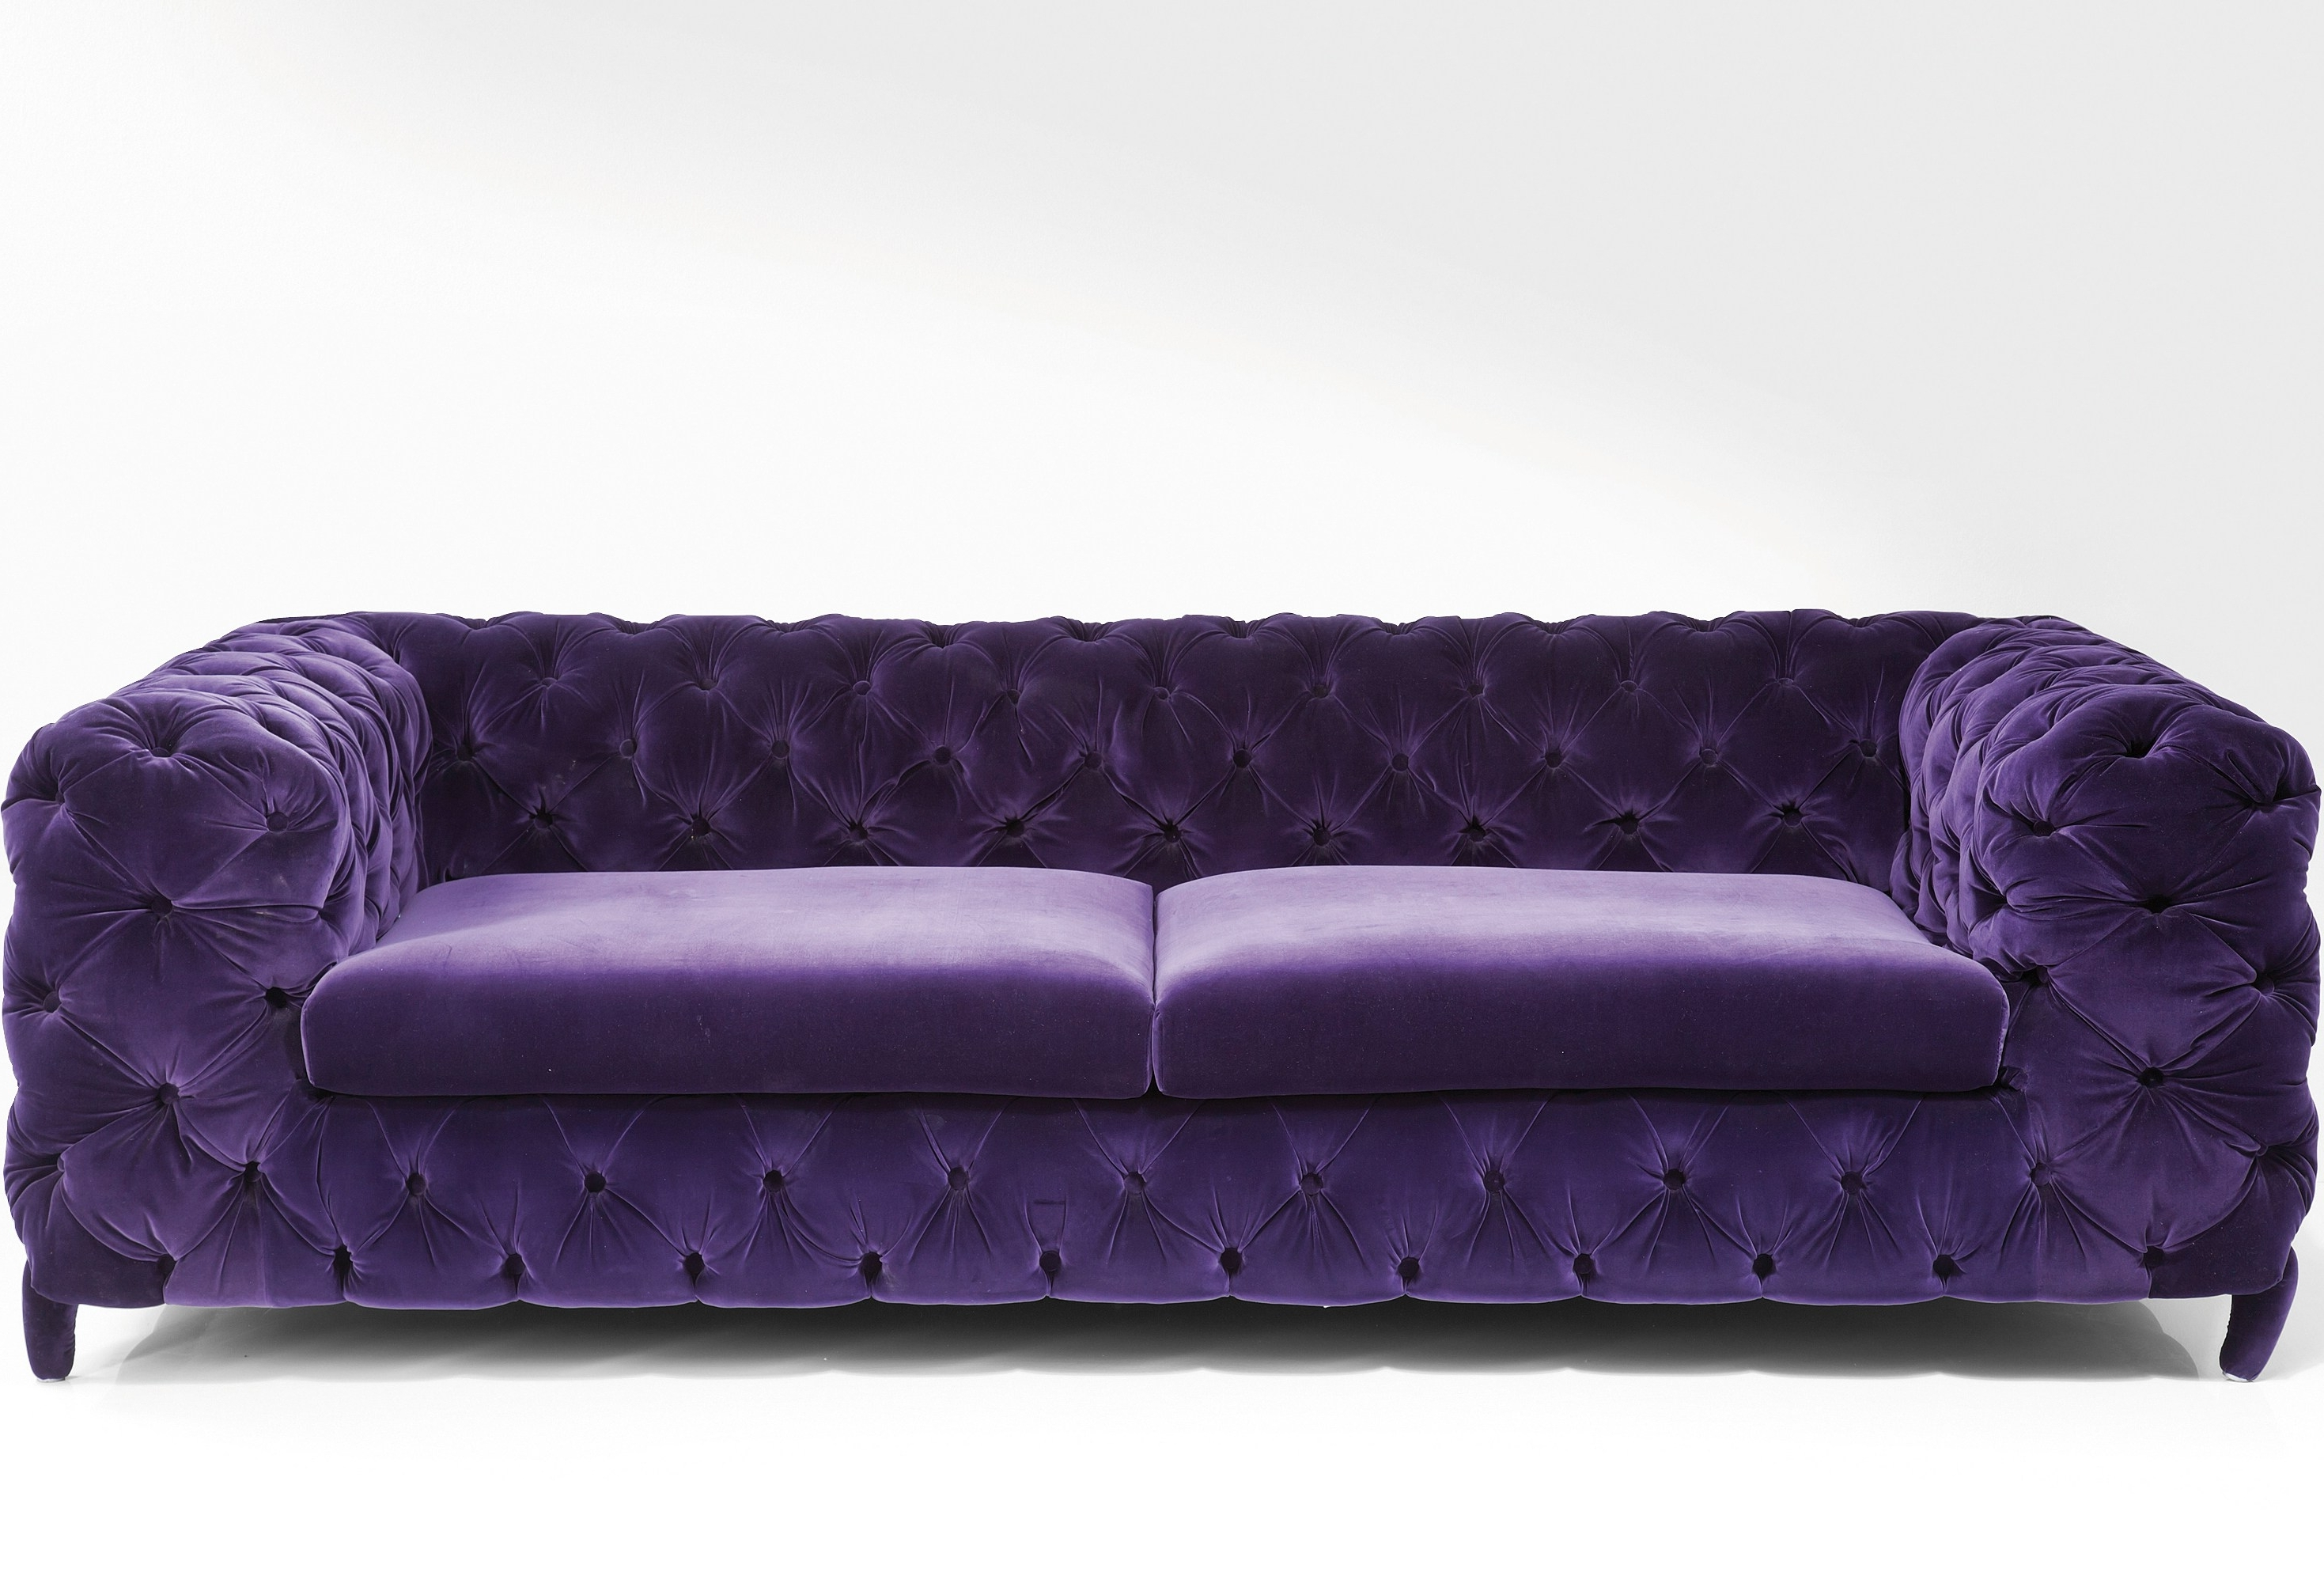 Living Room : Match A Purple Sofa Living Room Decor Purple Leather For Fashionable Velvet Purple Sofas (View 2 of 20)